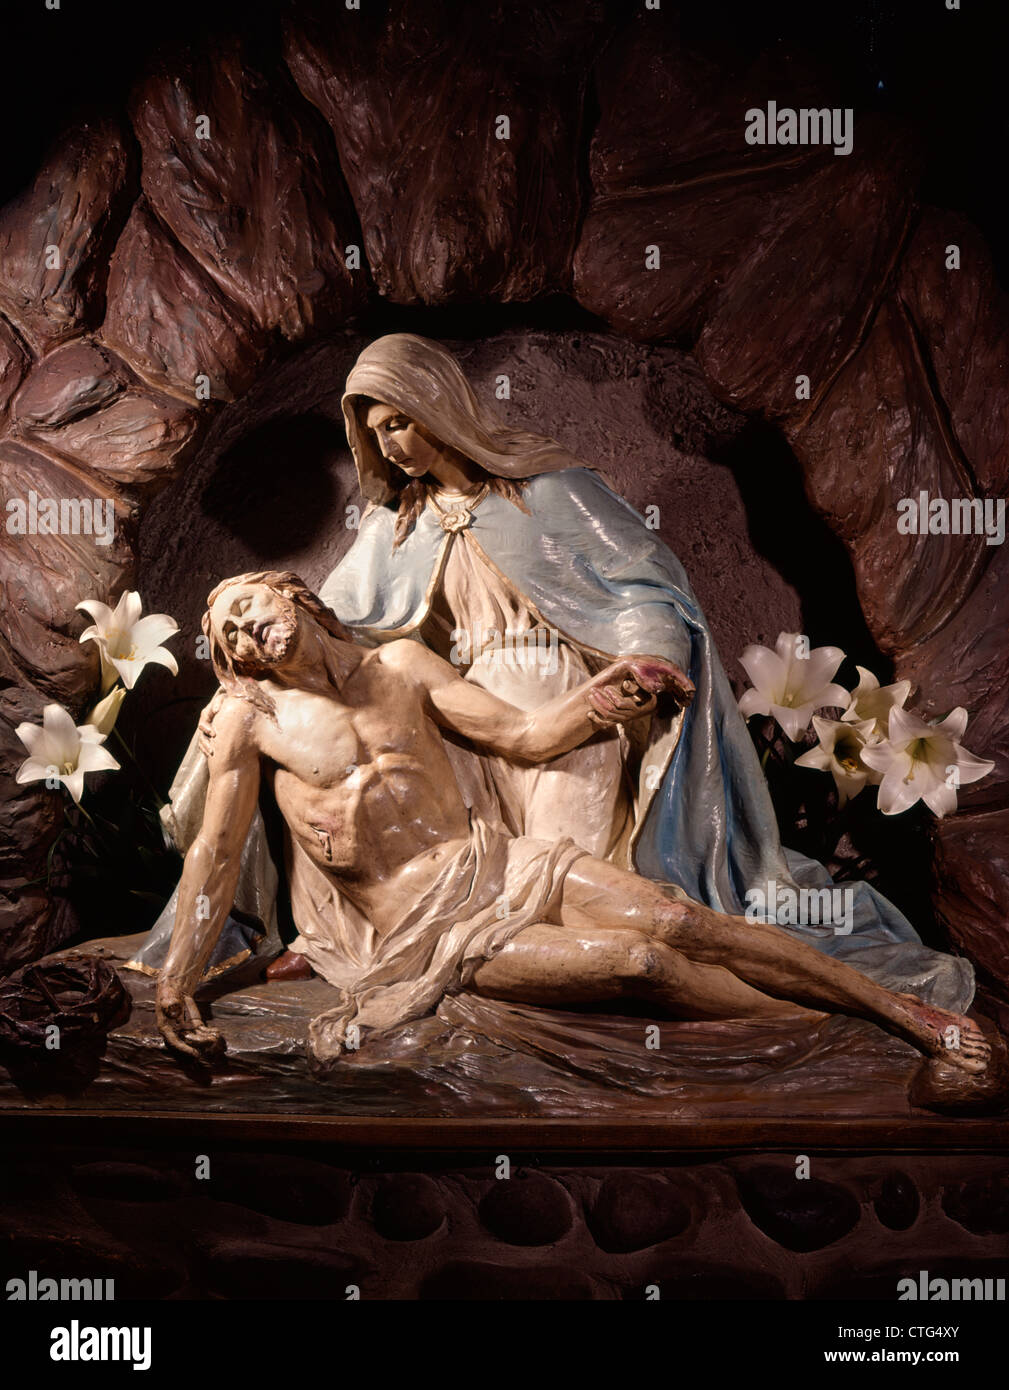 a pieta statue of mary mother holding dead body of jesus christ in